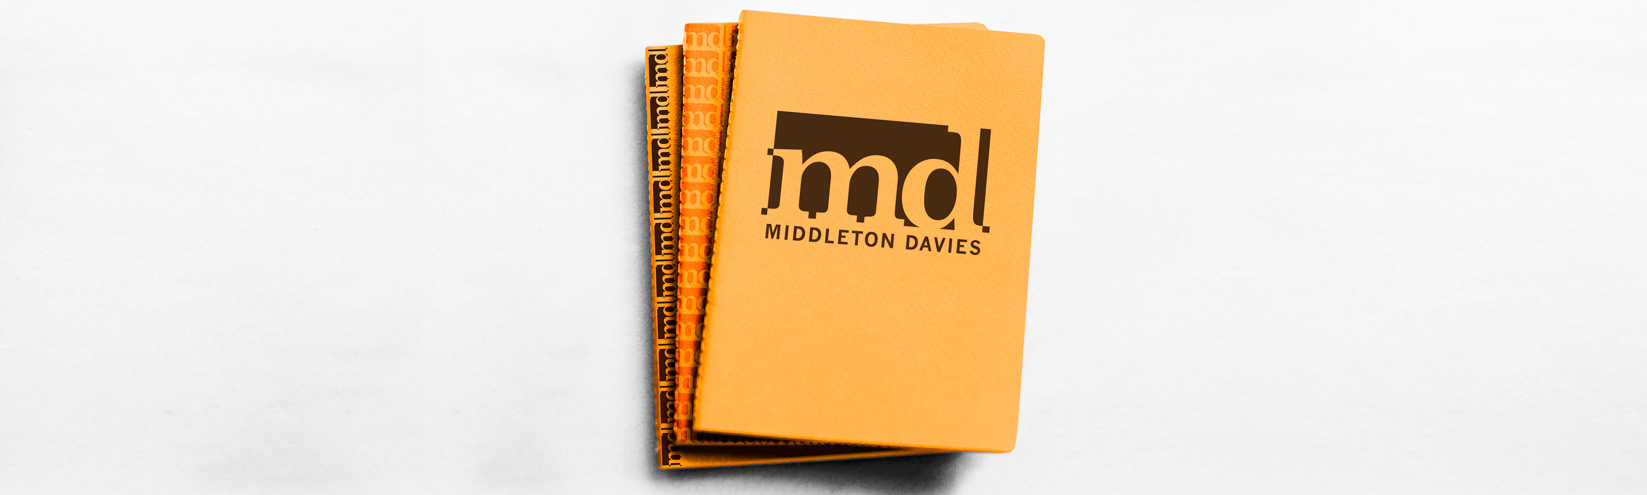 MIDDLETON DAVIES CORPORATE BRANDING AGENCY